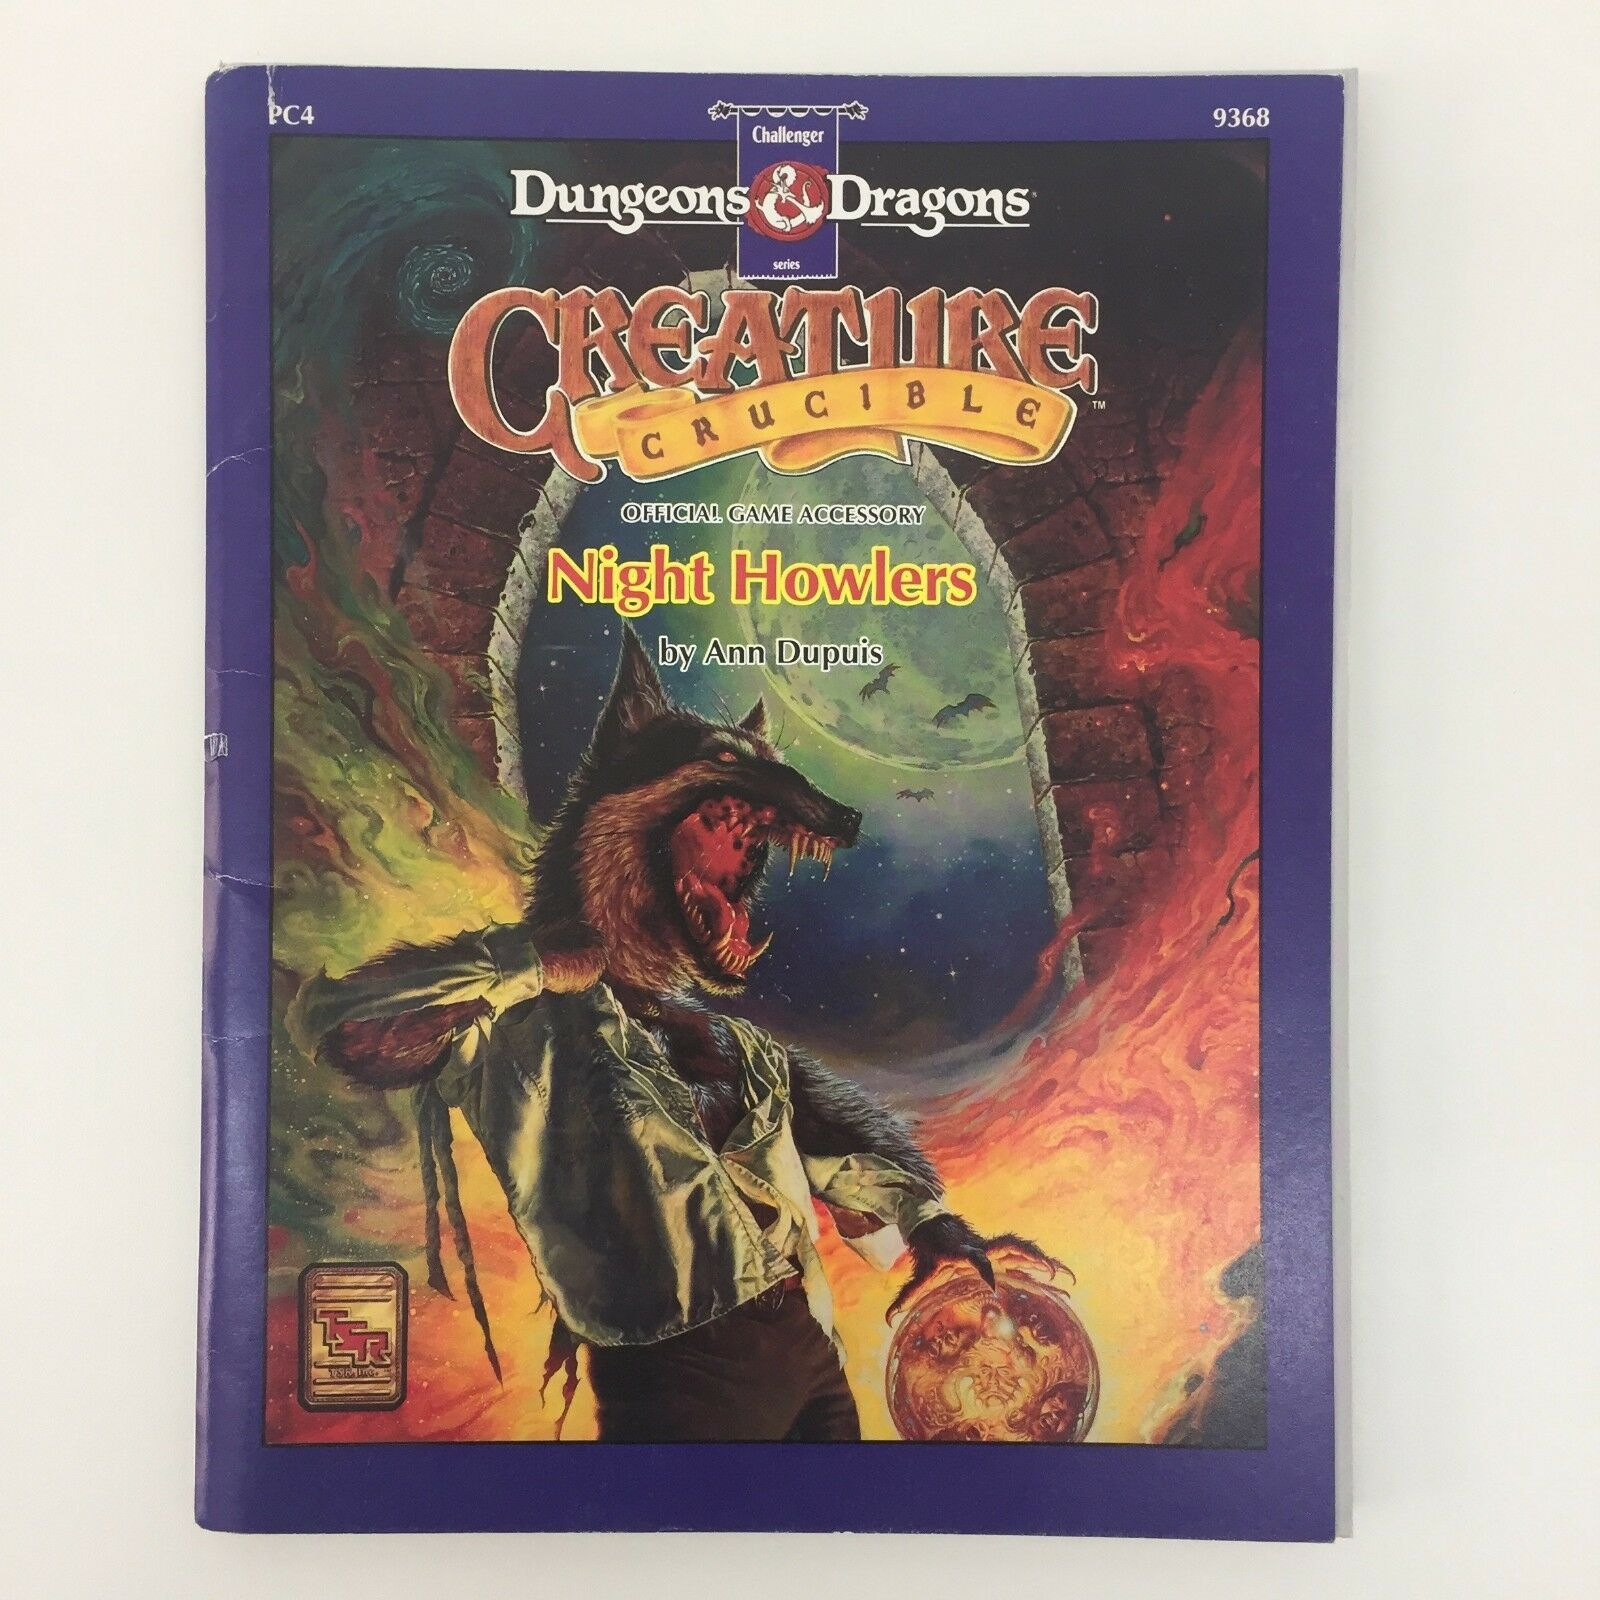 TSR ADVANCED DUNGEONS & DRAGONS CREATURES CRUCIBLE NIGHT HOWLERS RPG D&D 9368